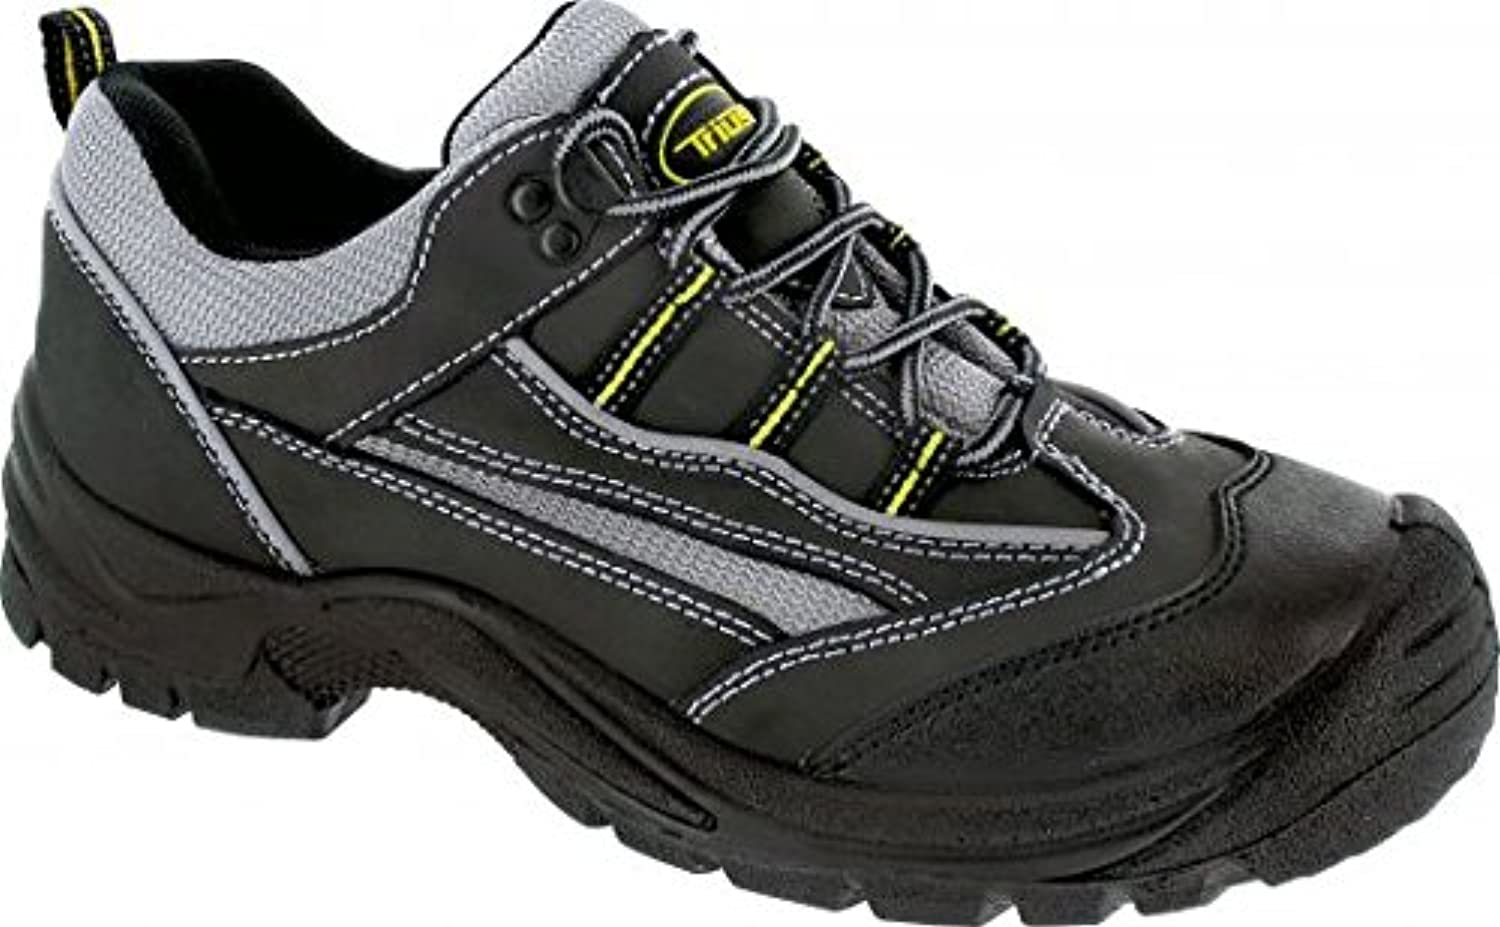 Triuso Roma S1P Safety shoes, 42, 1